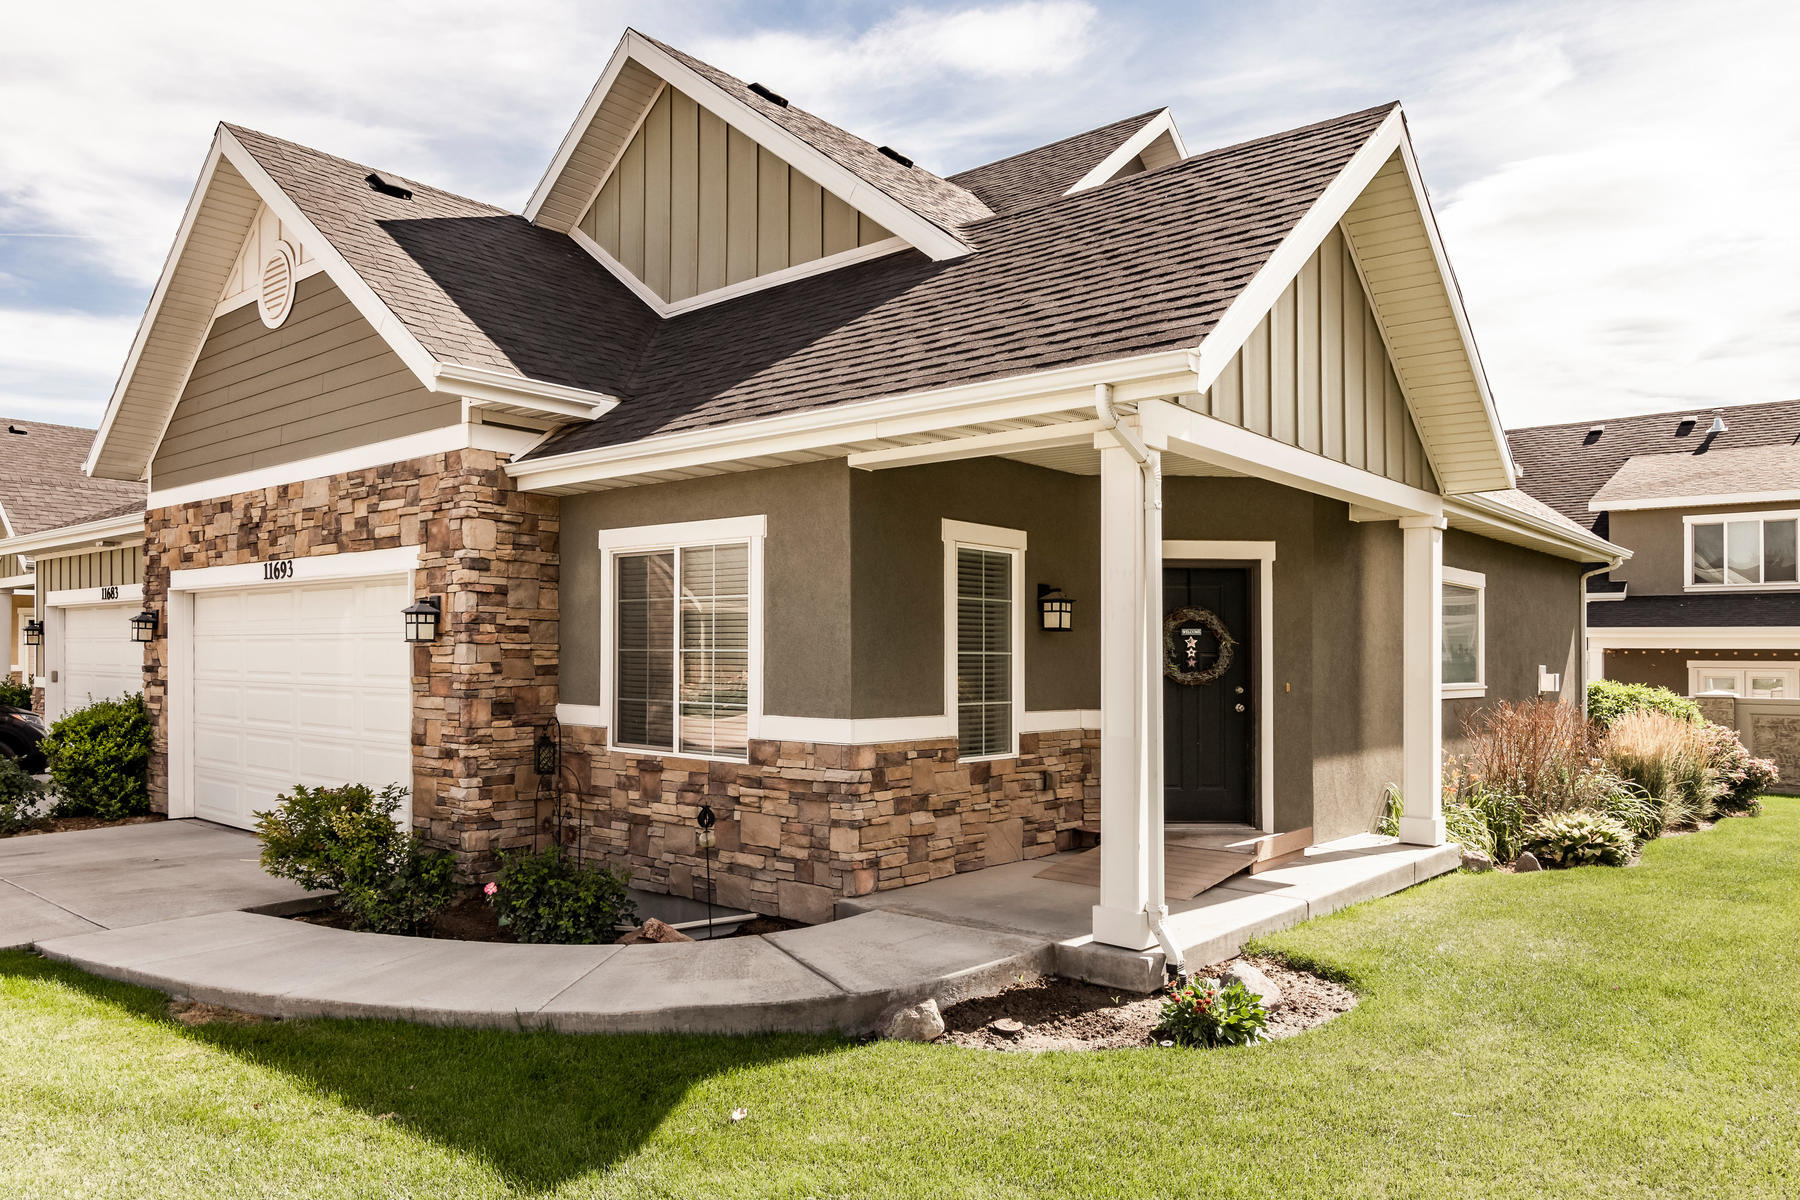 townhouses for Active at Gorgeous Rambler Style Townhome 11693 S Winford Dr Riverton, Utah 84065 United States